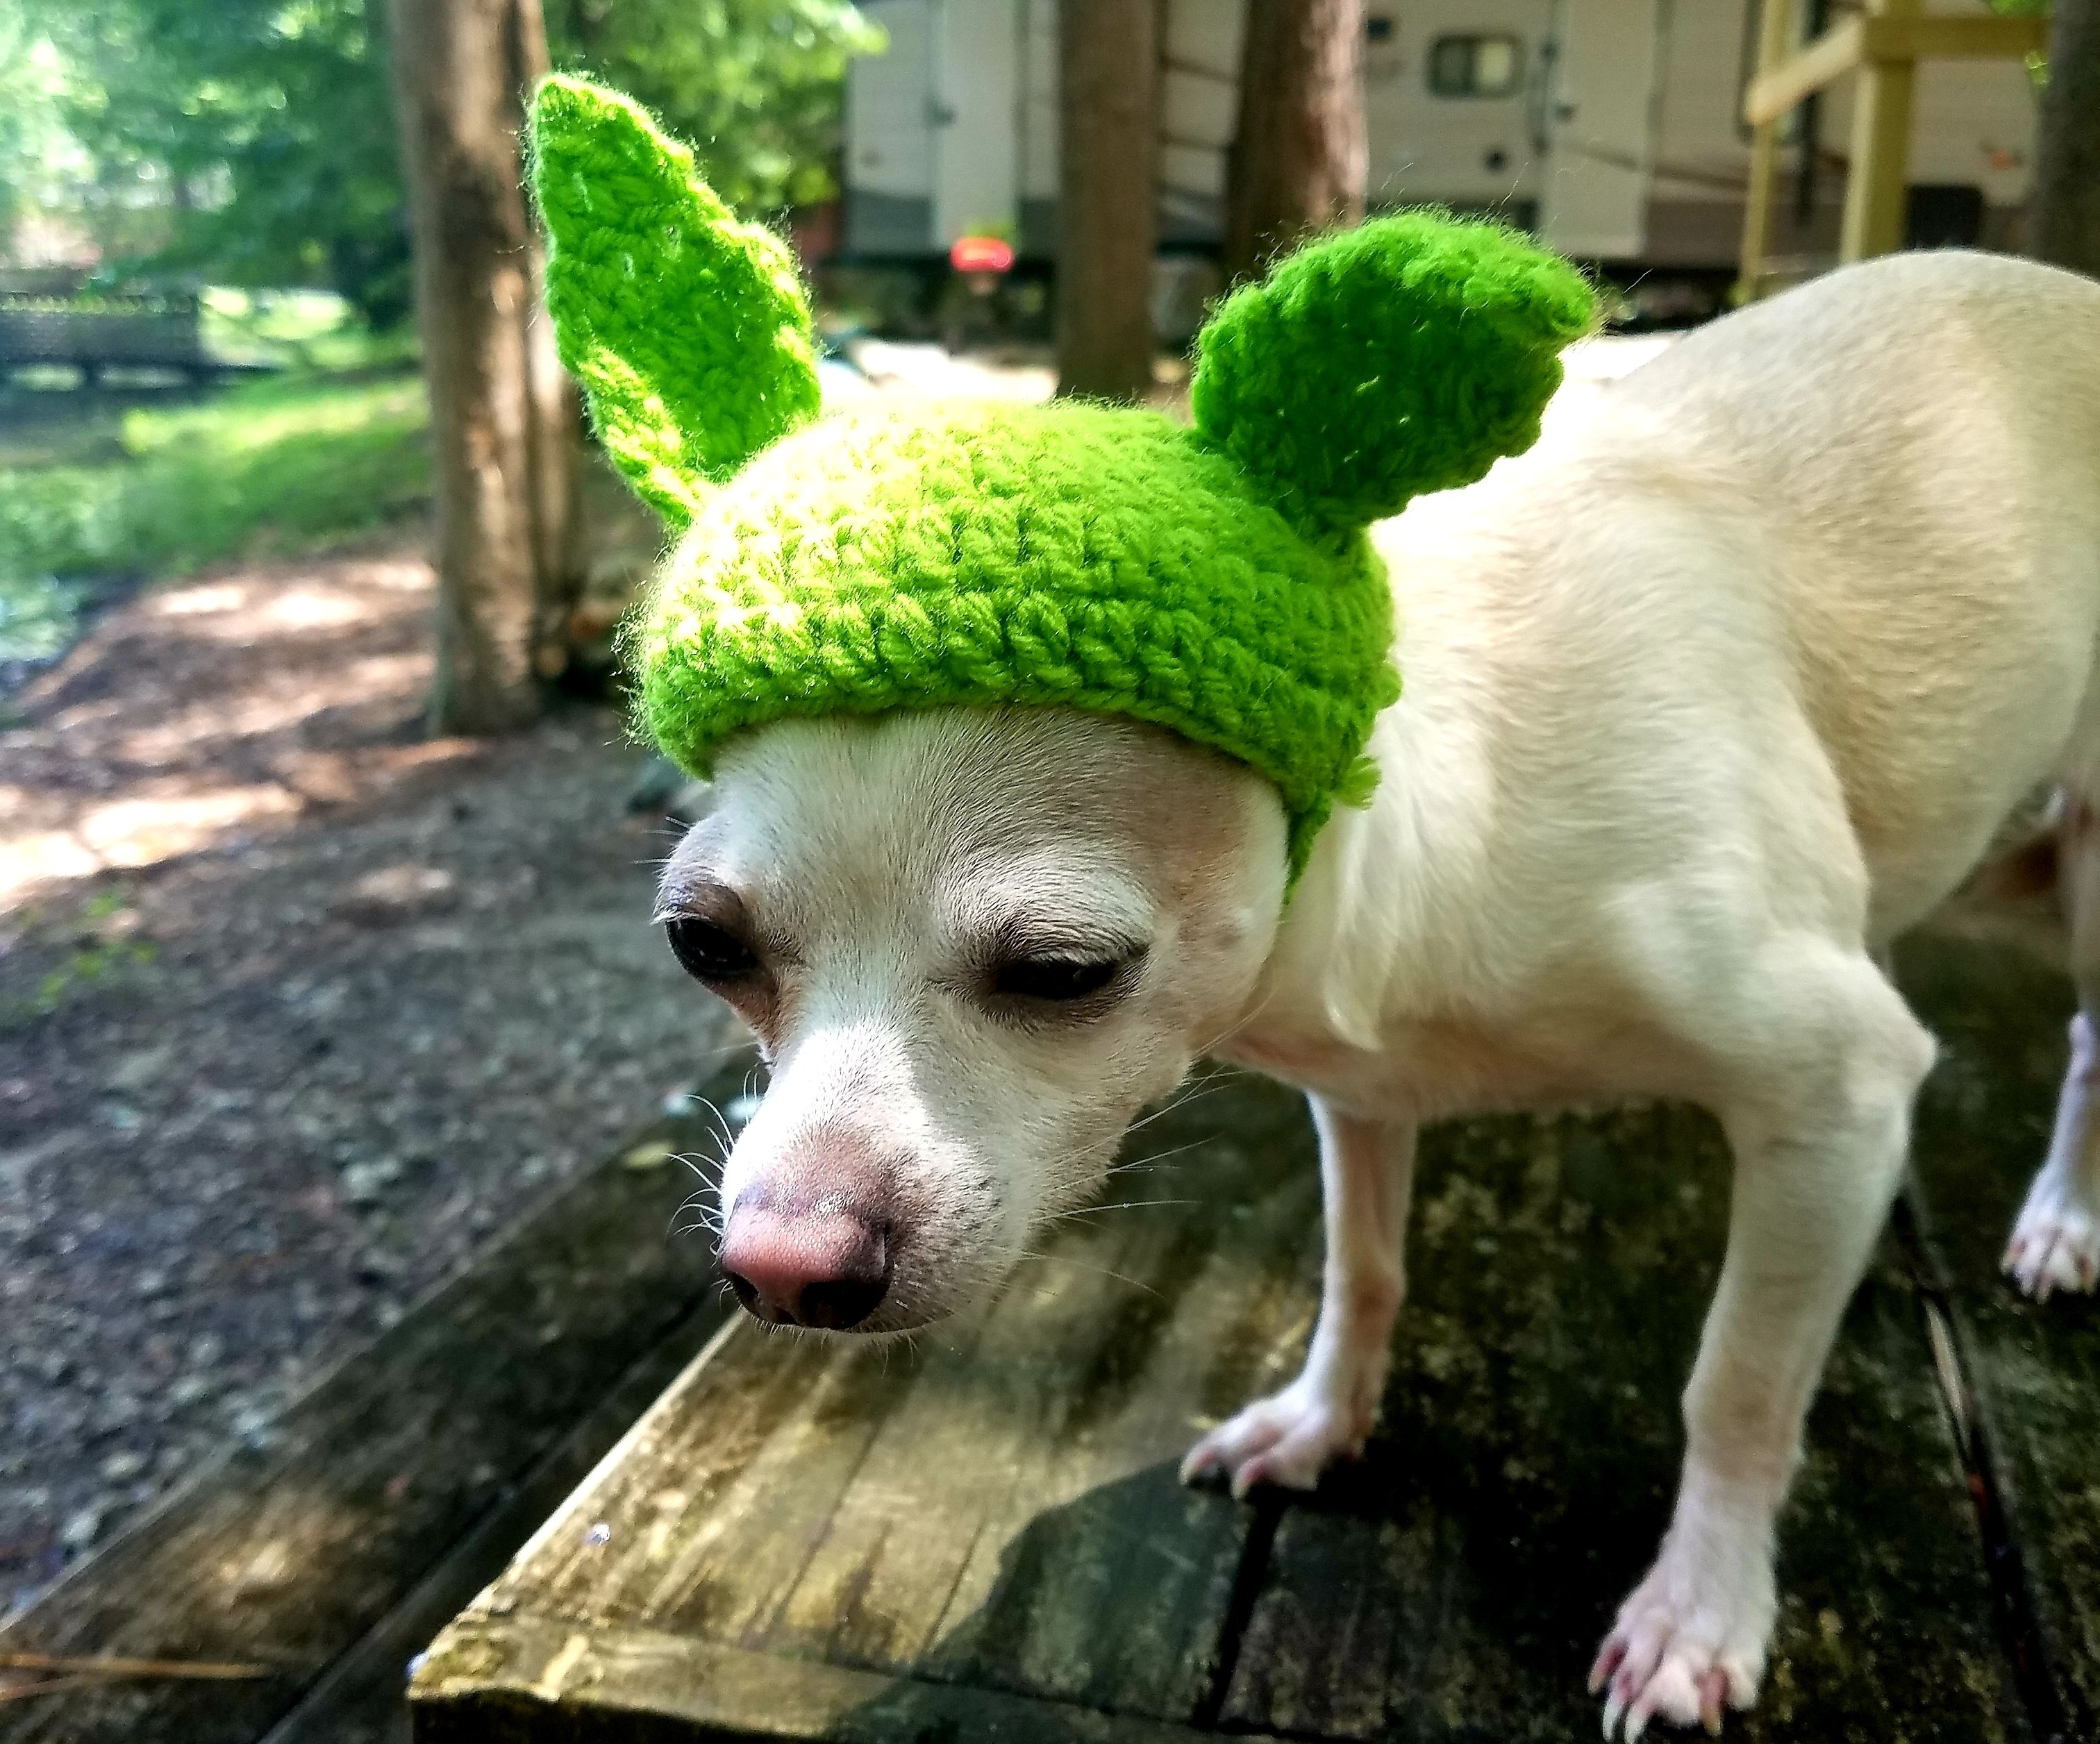 Little Baby Yoda Pet Hat ( With Baby Yoda Plushie)